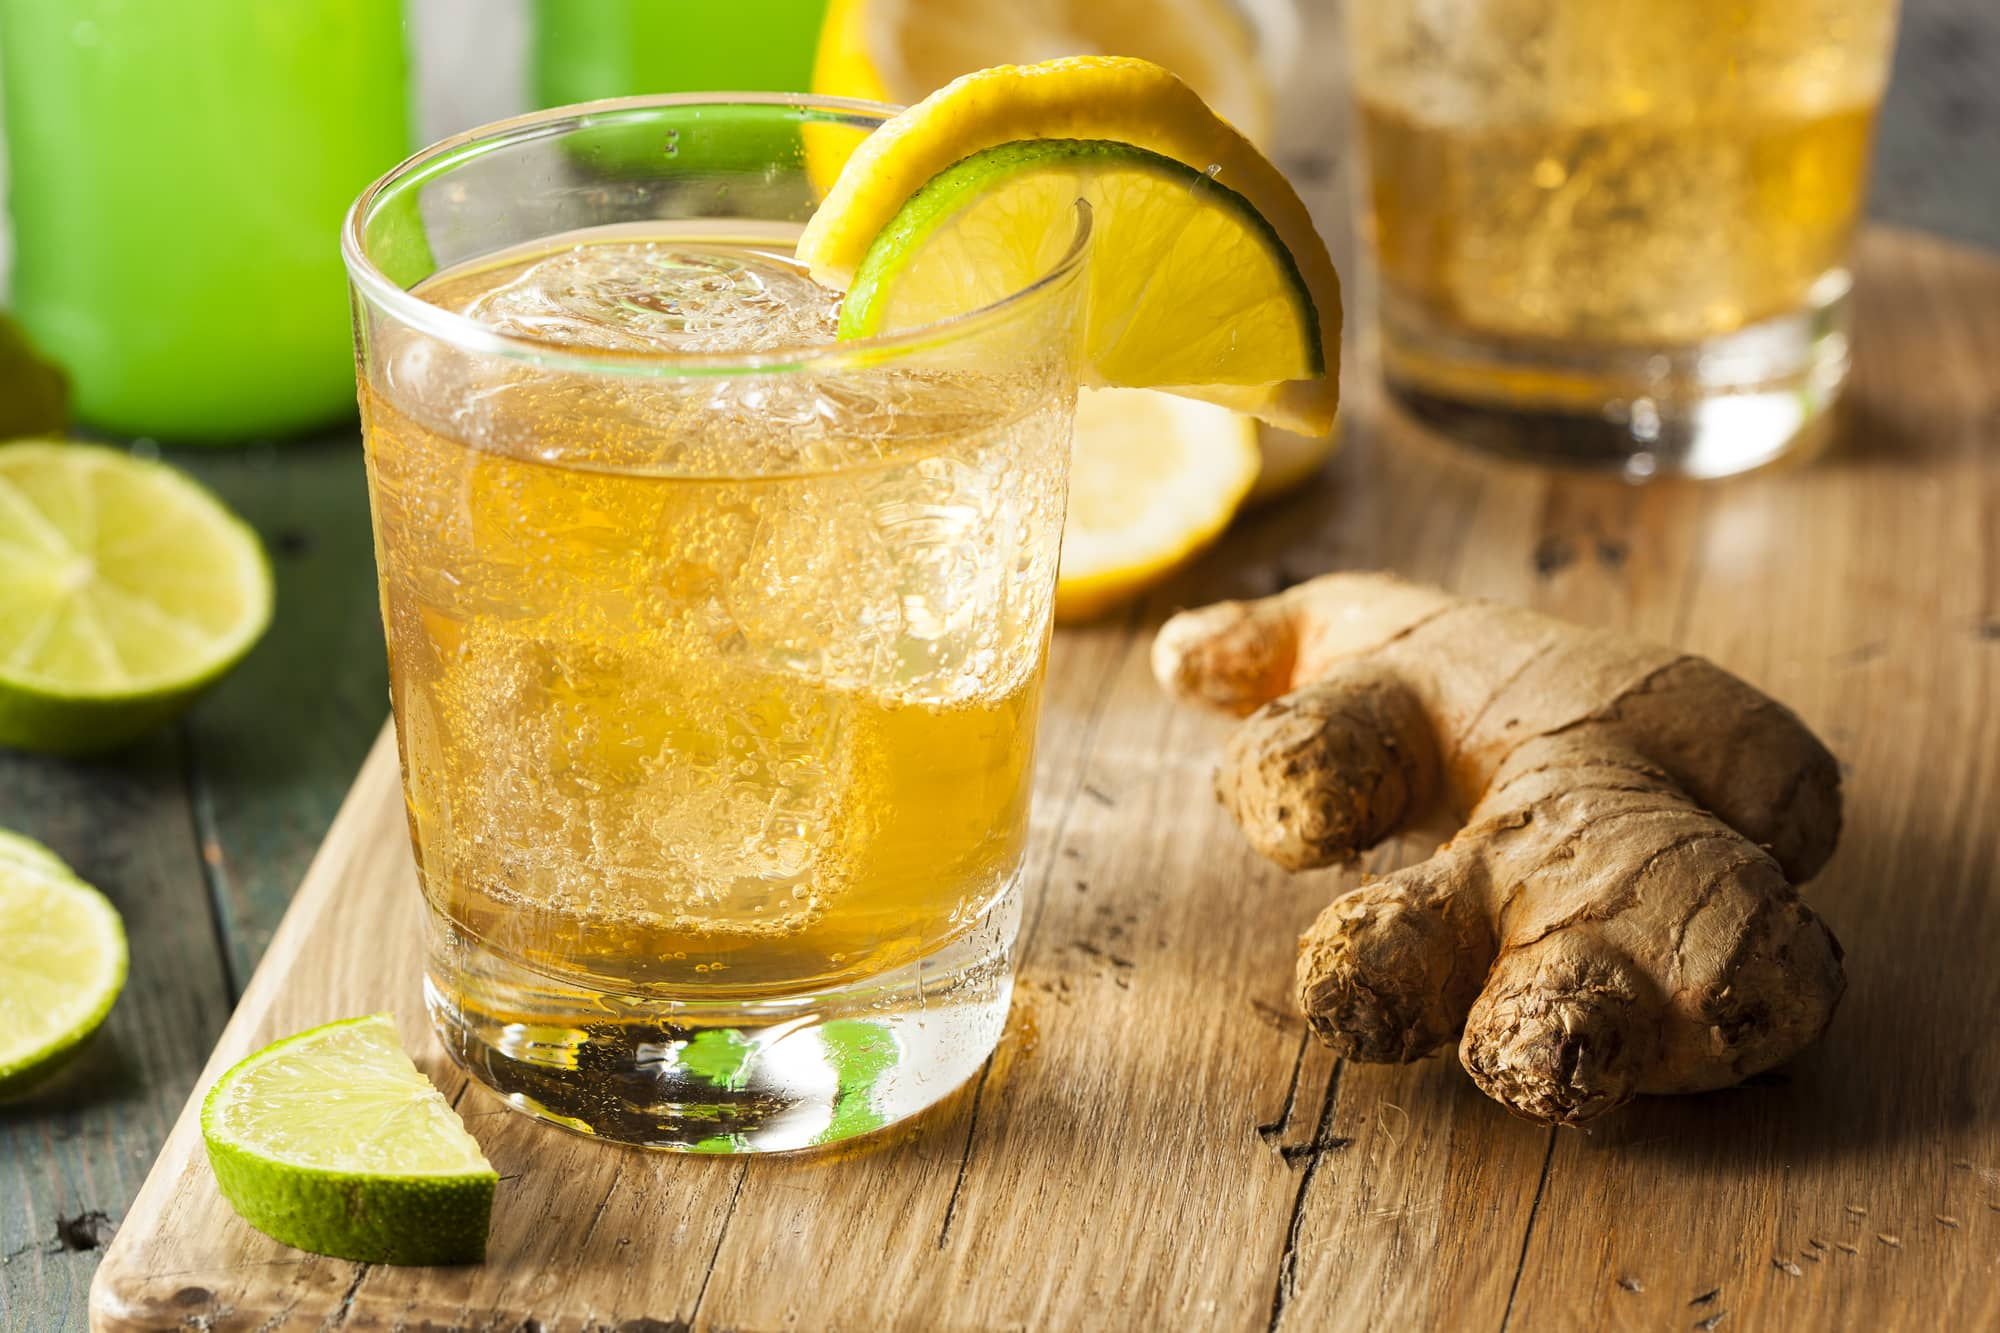 How To Make Alcoholic Ginger Beer